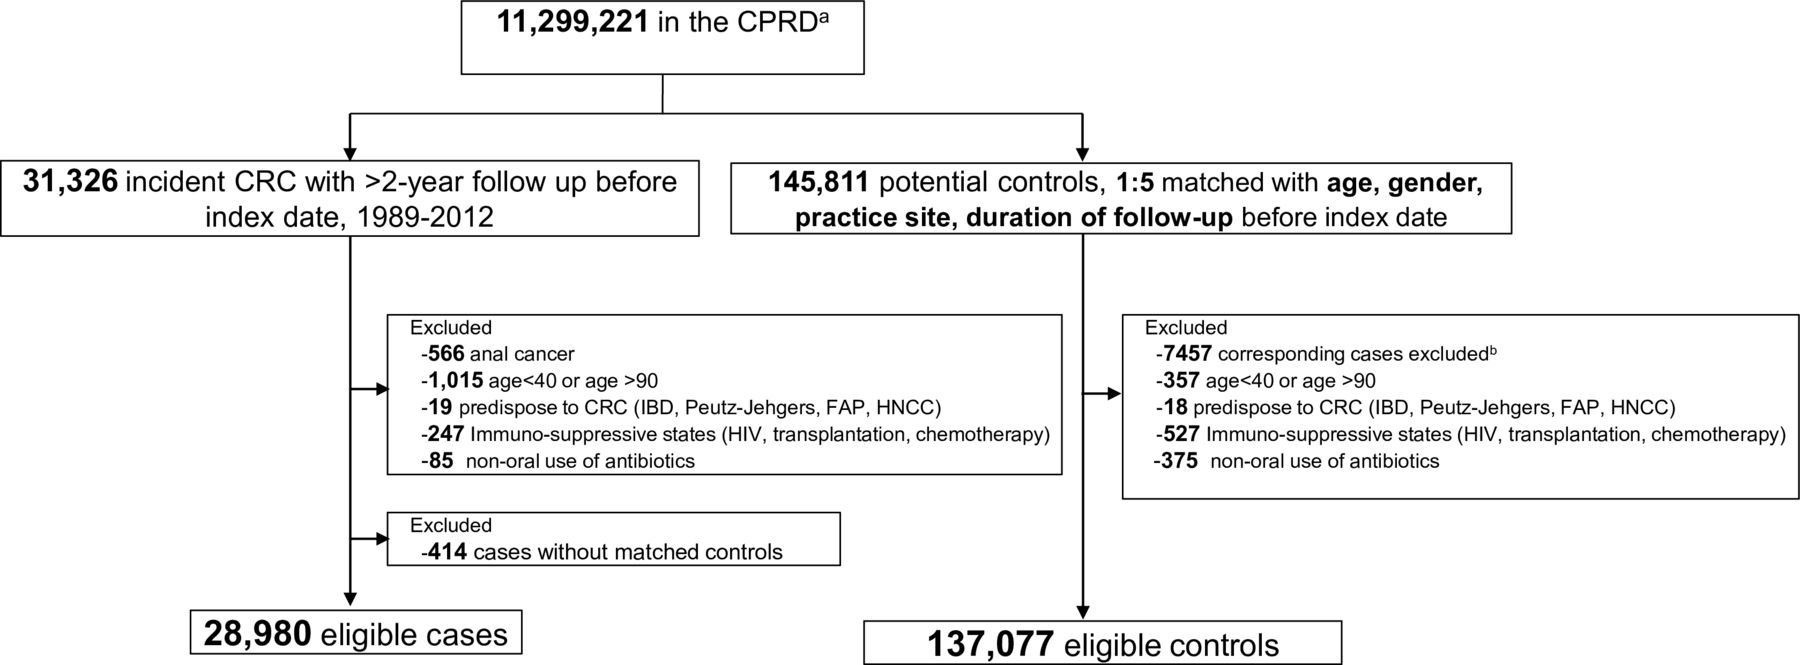 Oral Antibiotic Use And Risk Of Colorectal Cancer In The United Kingdom 1989 2012 A Matched Case Control Study Gut